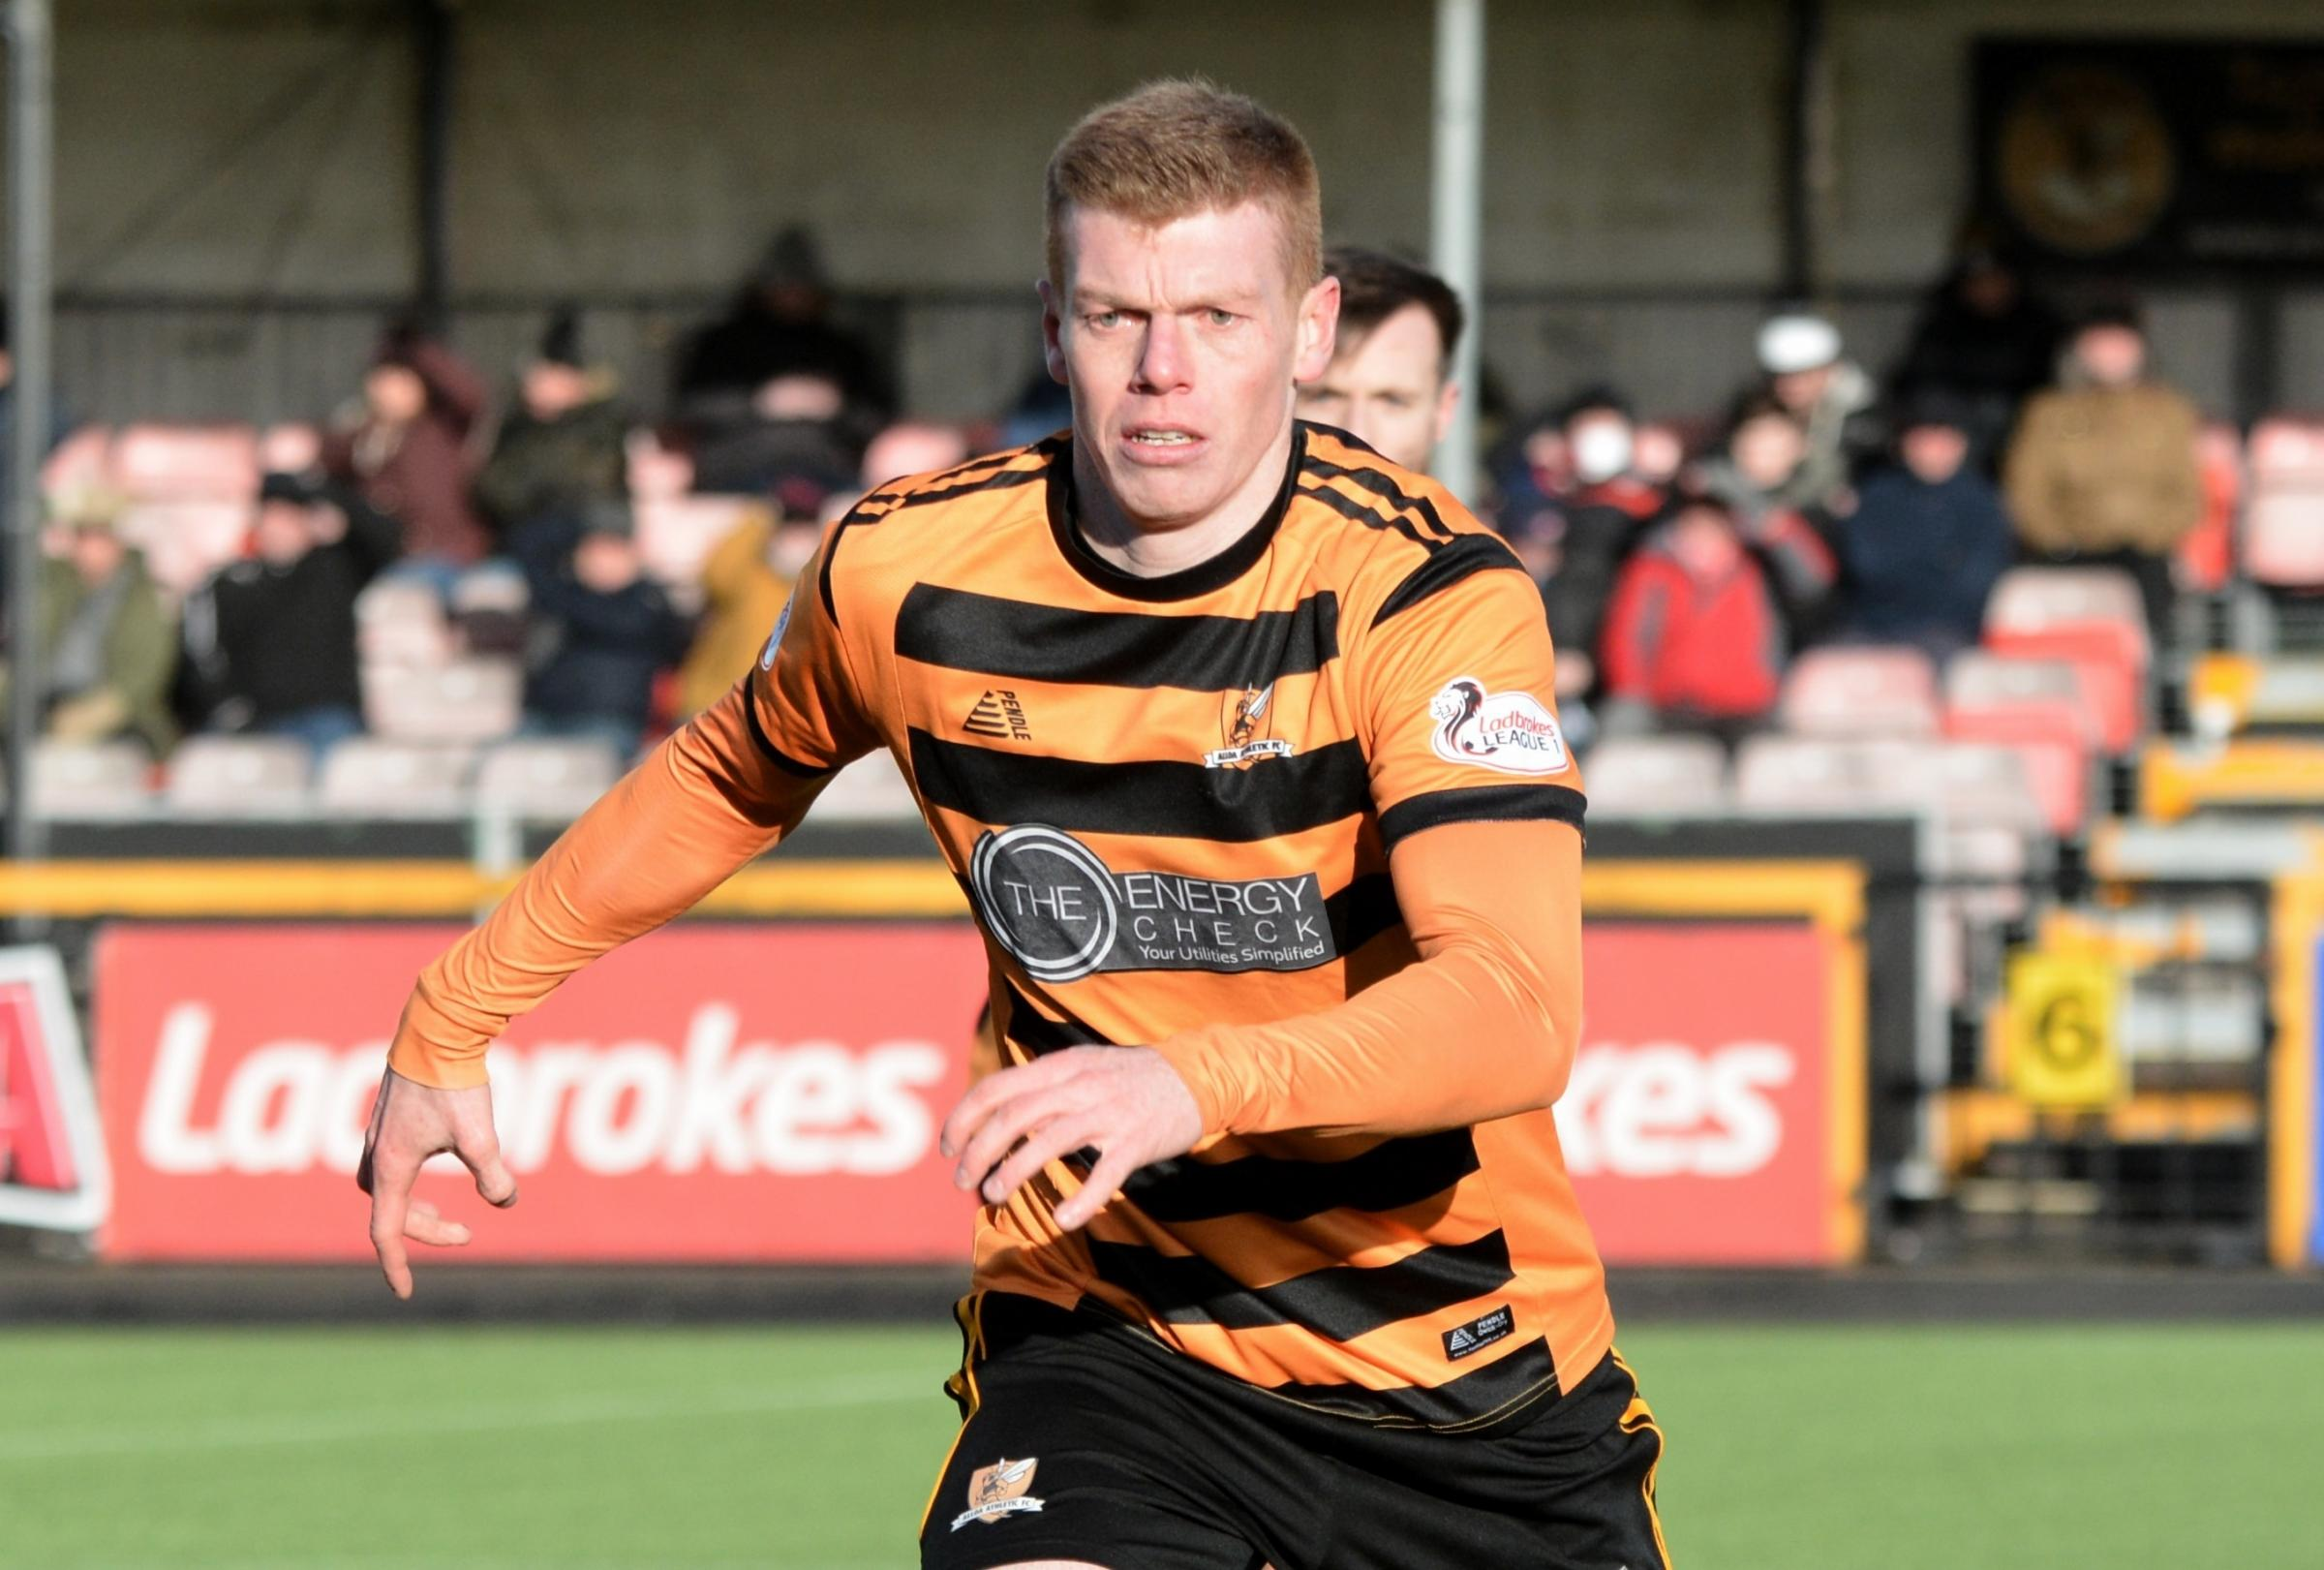 Robertson in action for Alloa earlier this season. Pic by David Glencross